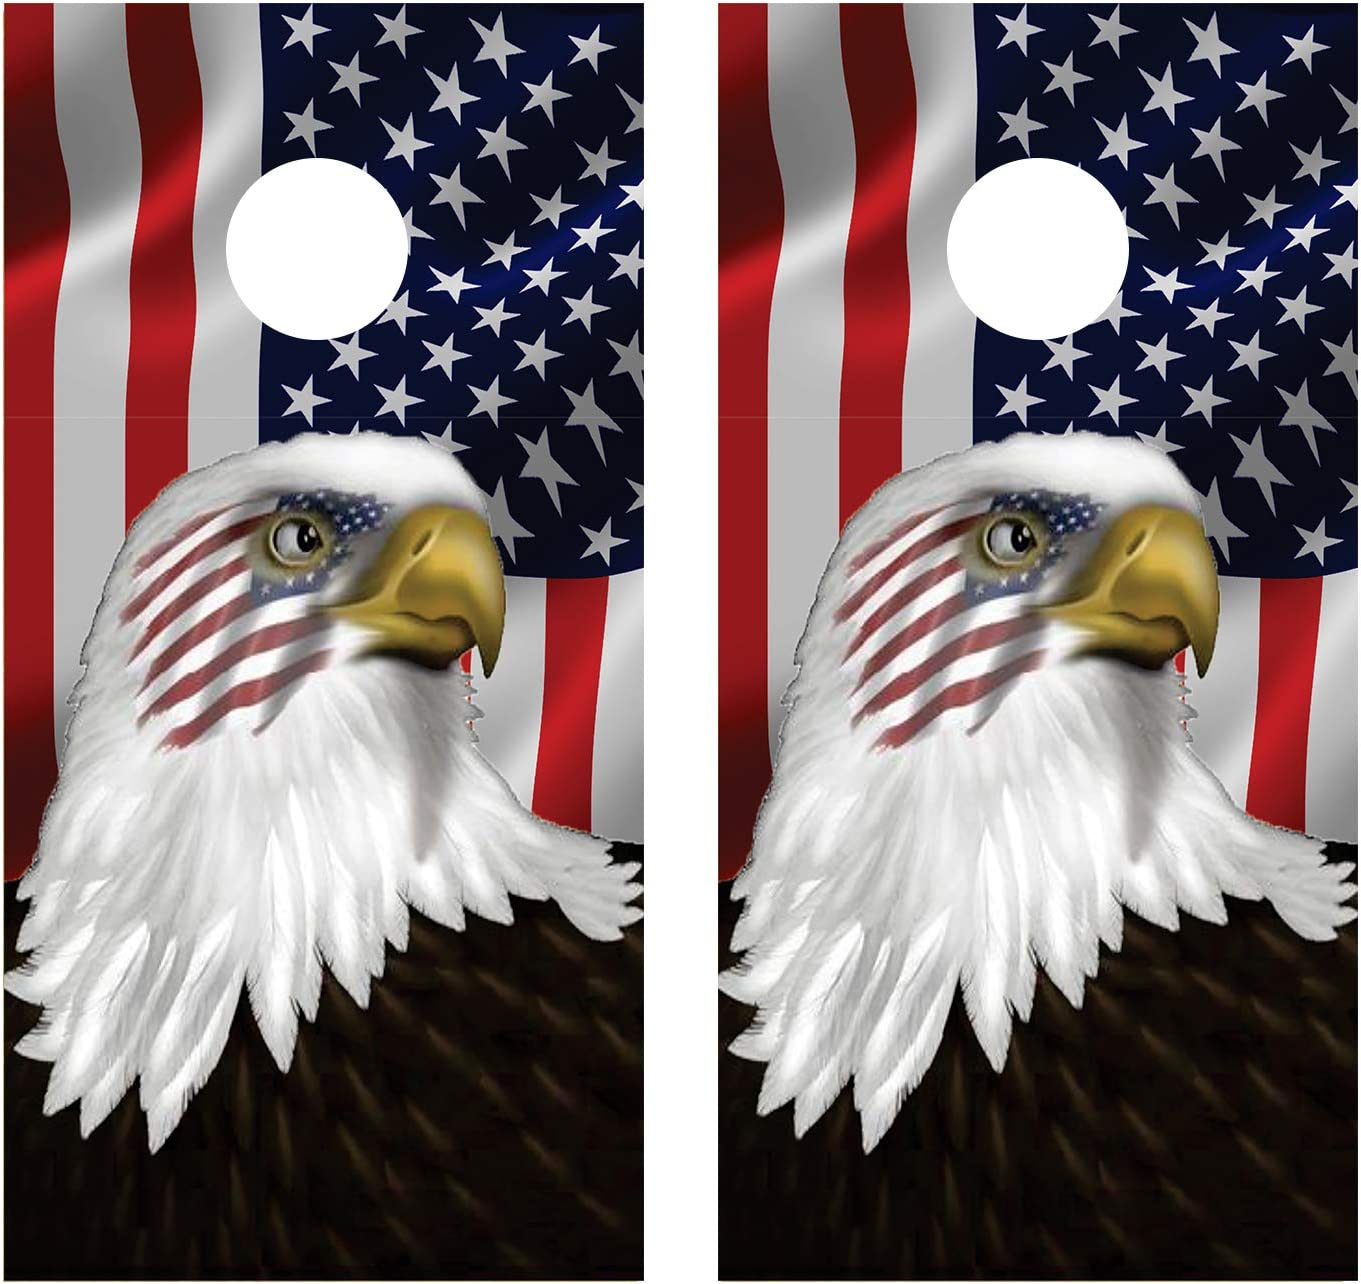 Deluxe Let's Print Big Eagle Eye Import Wraps Cornhole Board Decal